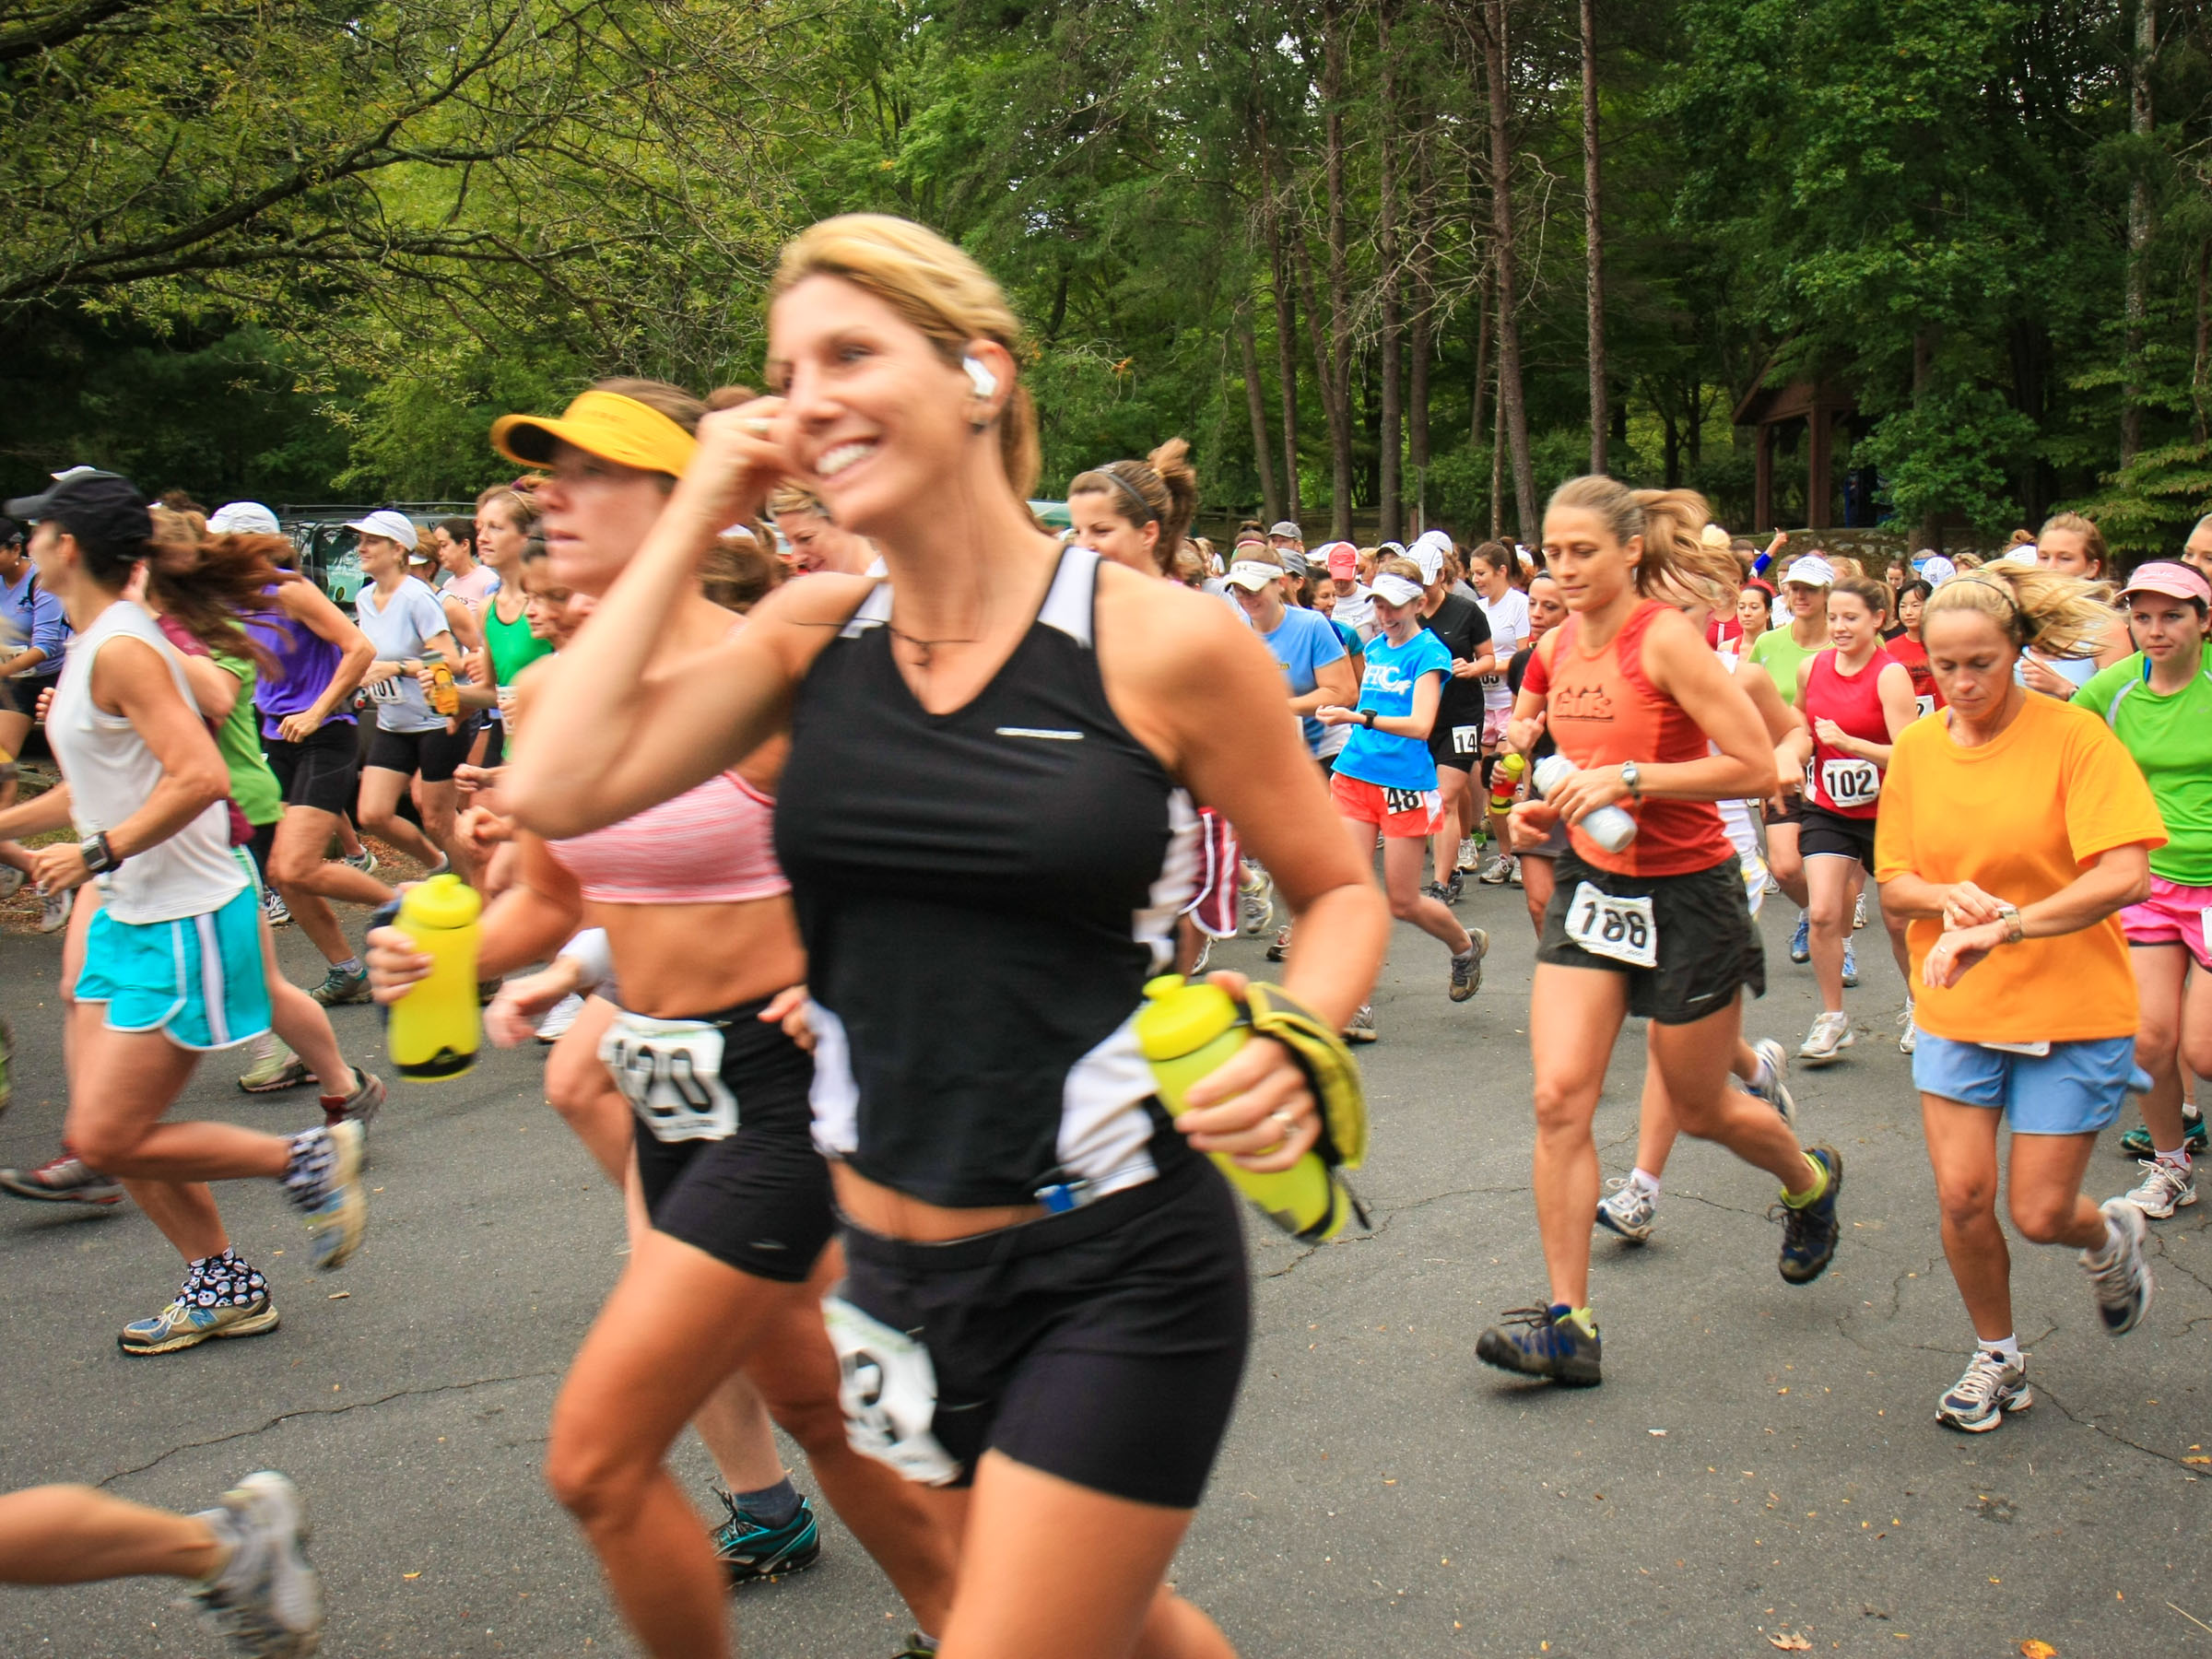 Starting the 2009 Women's Half Marathon